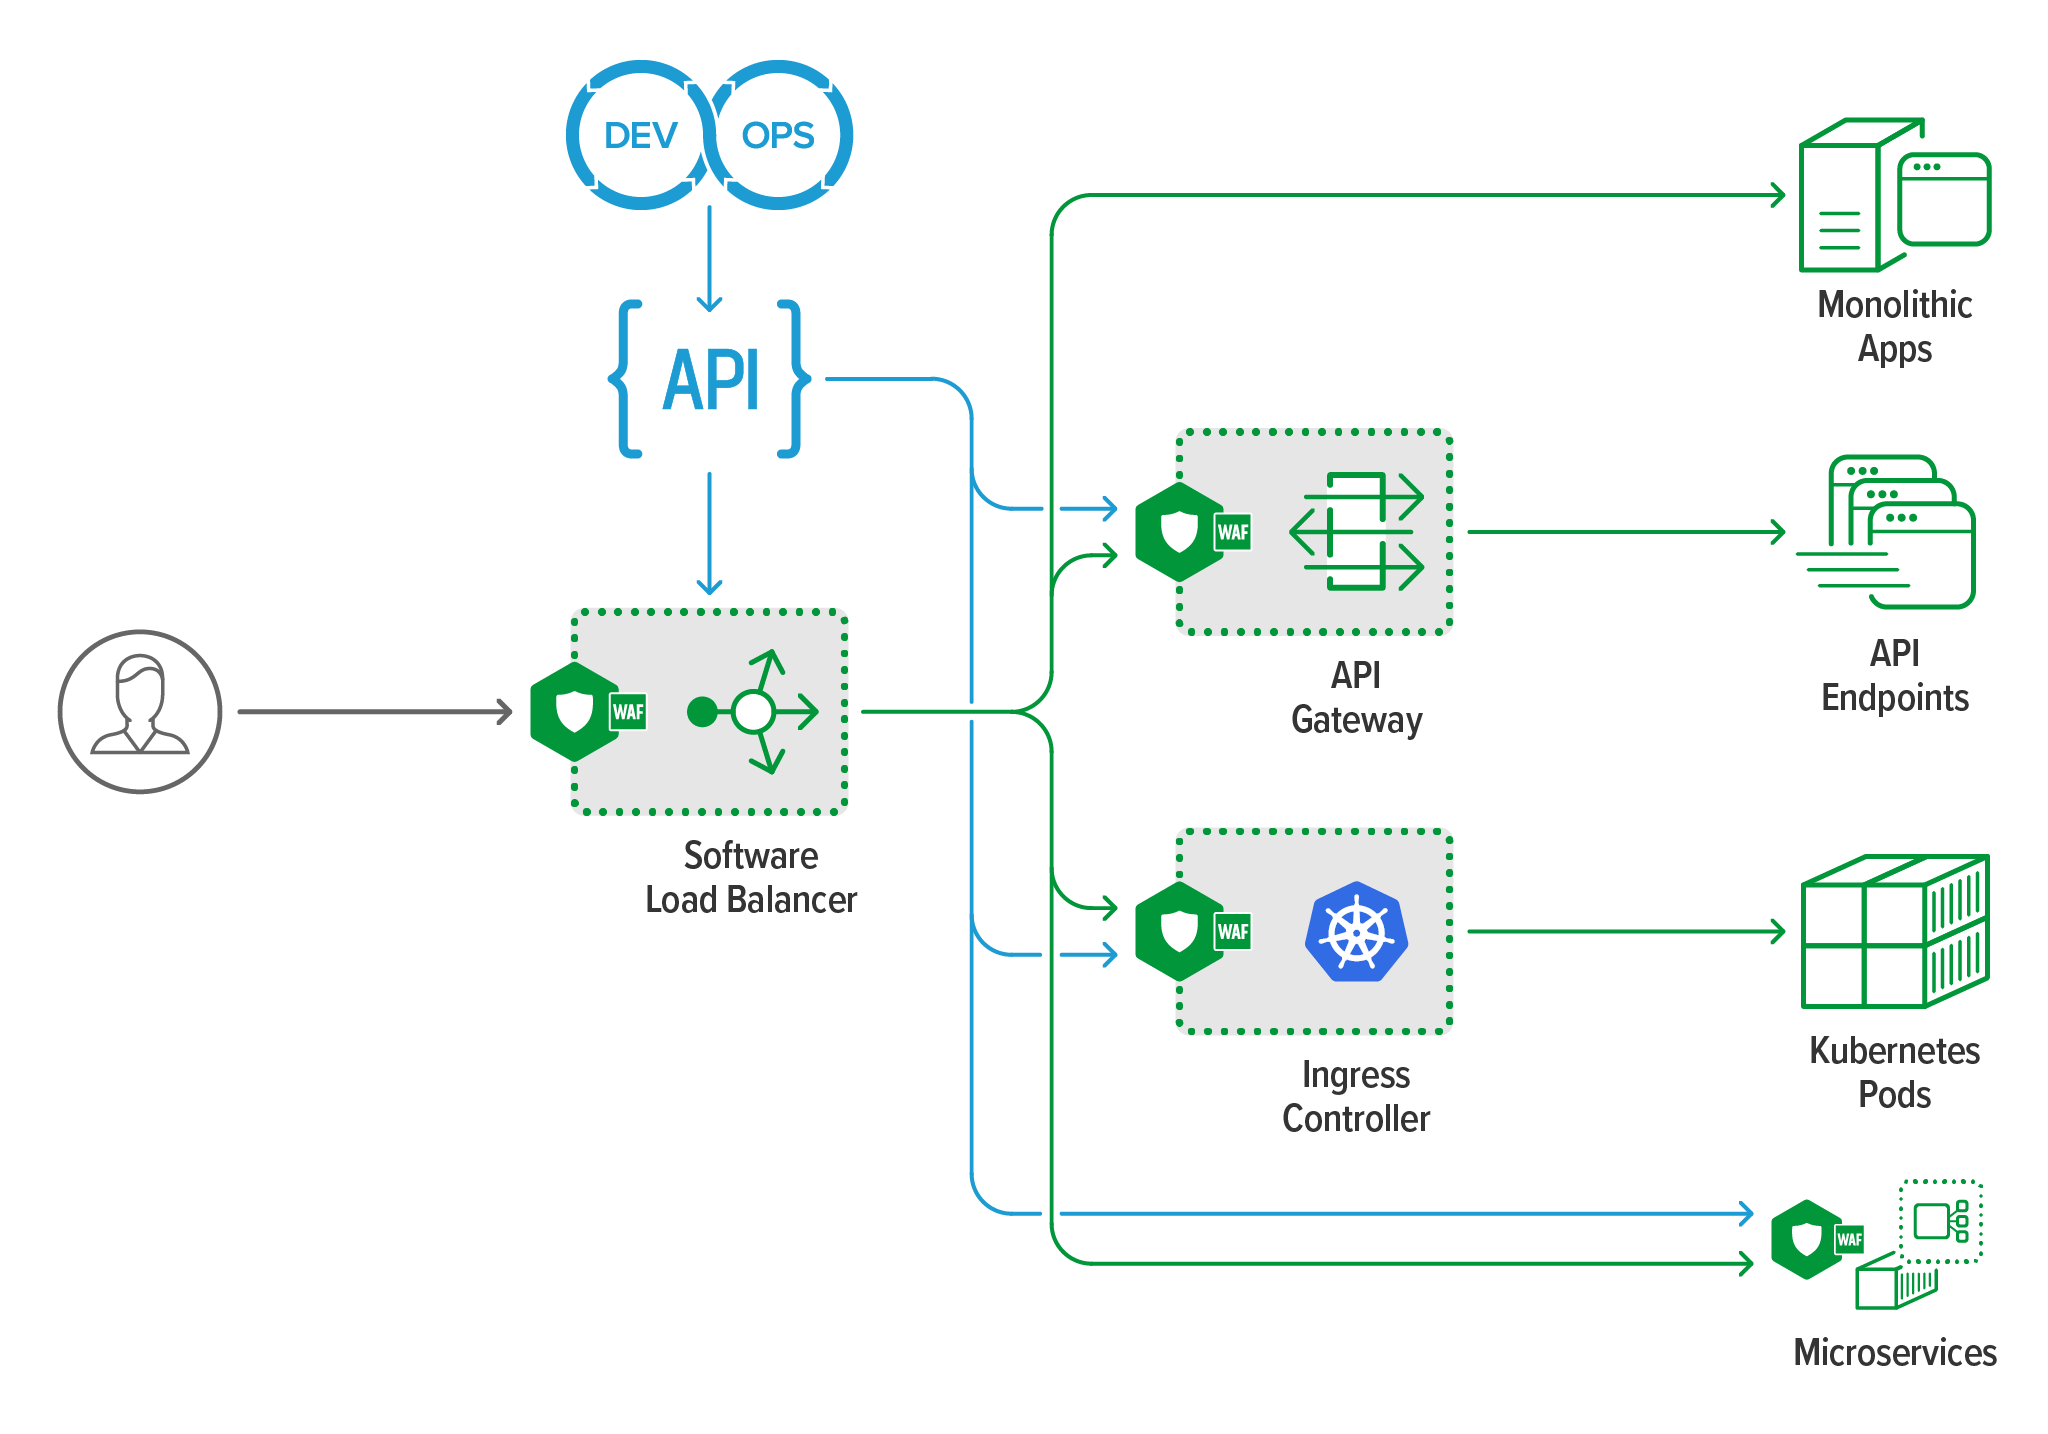 NGINX App Protect WAF can be deployed in multiple locations in modern app environment